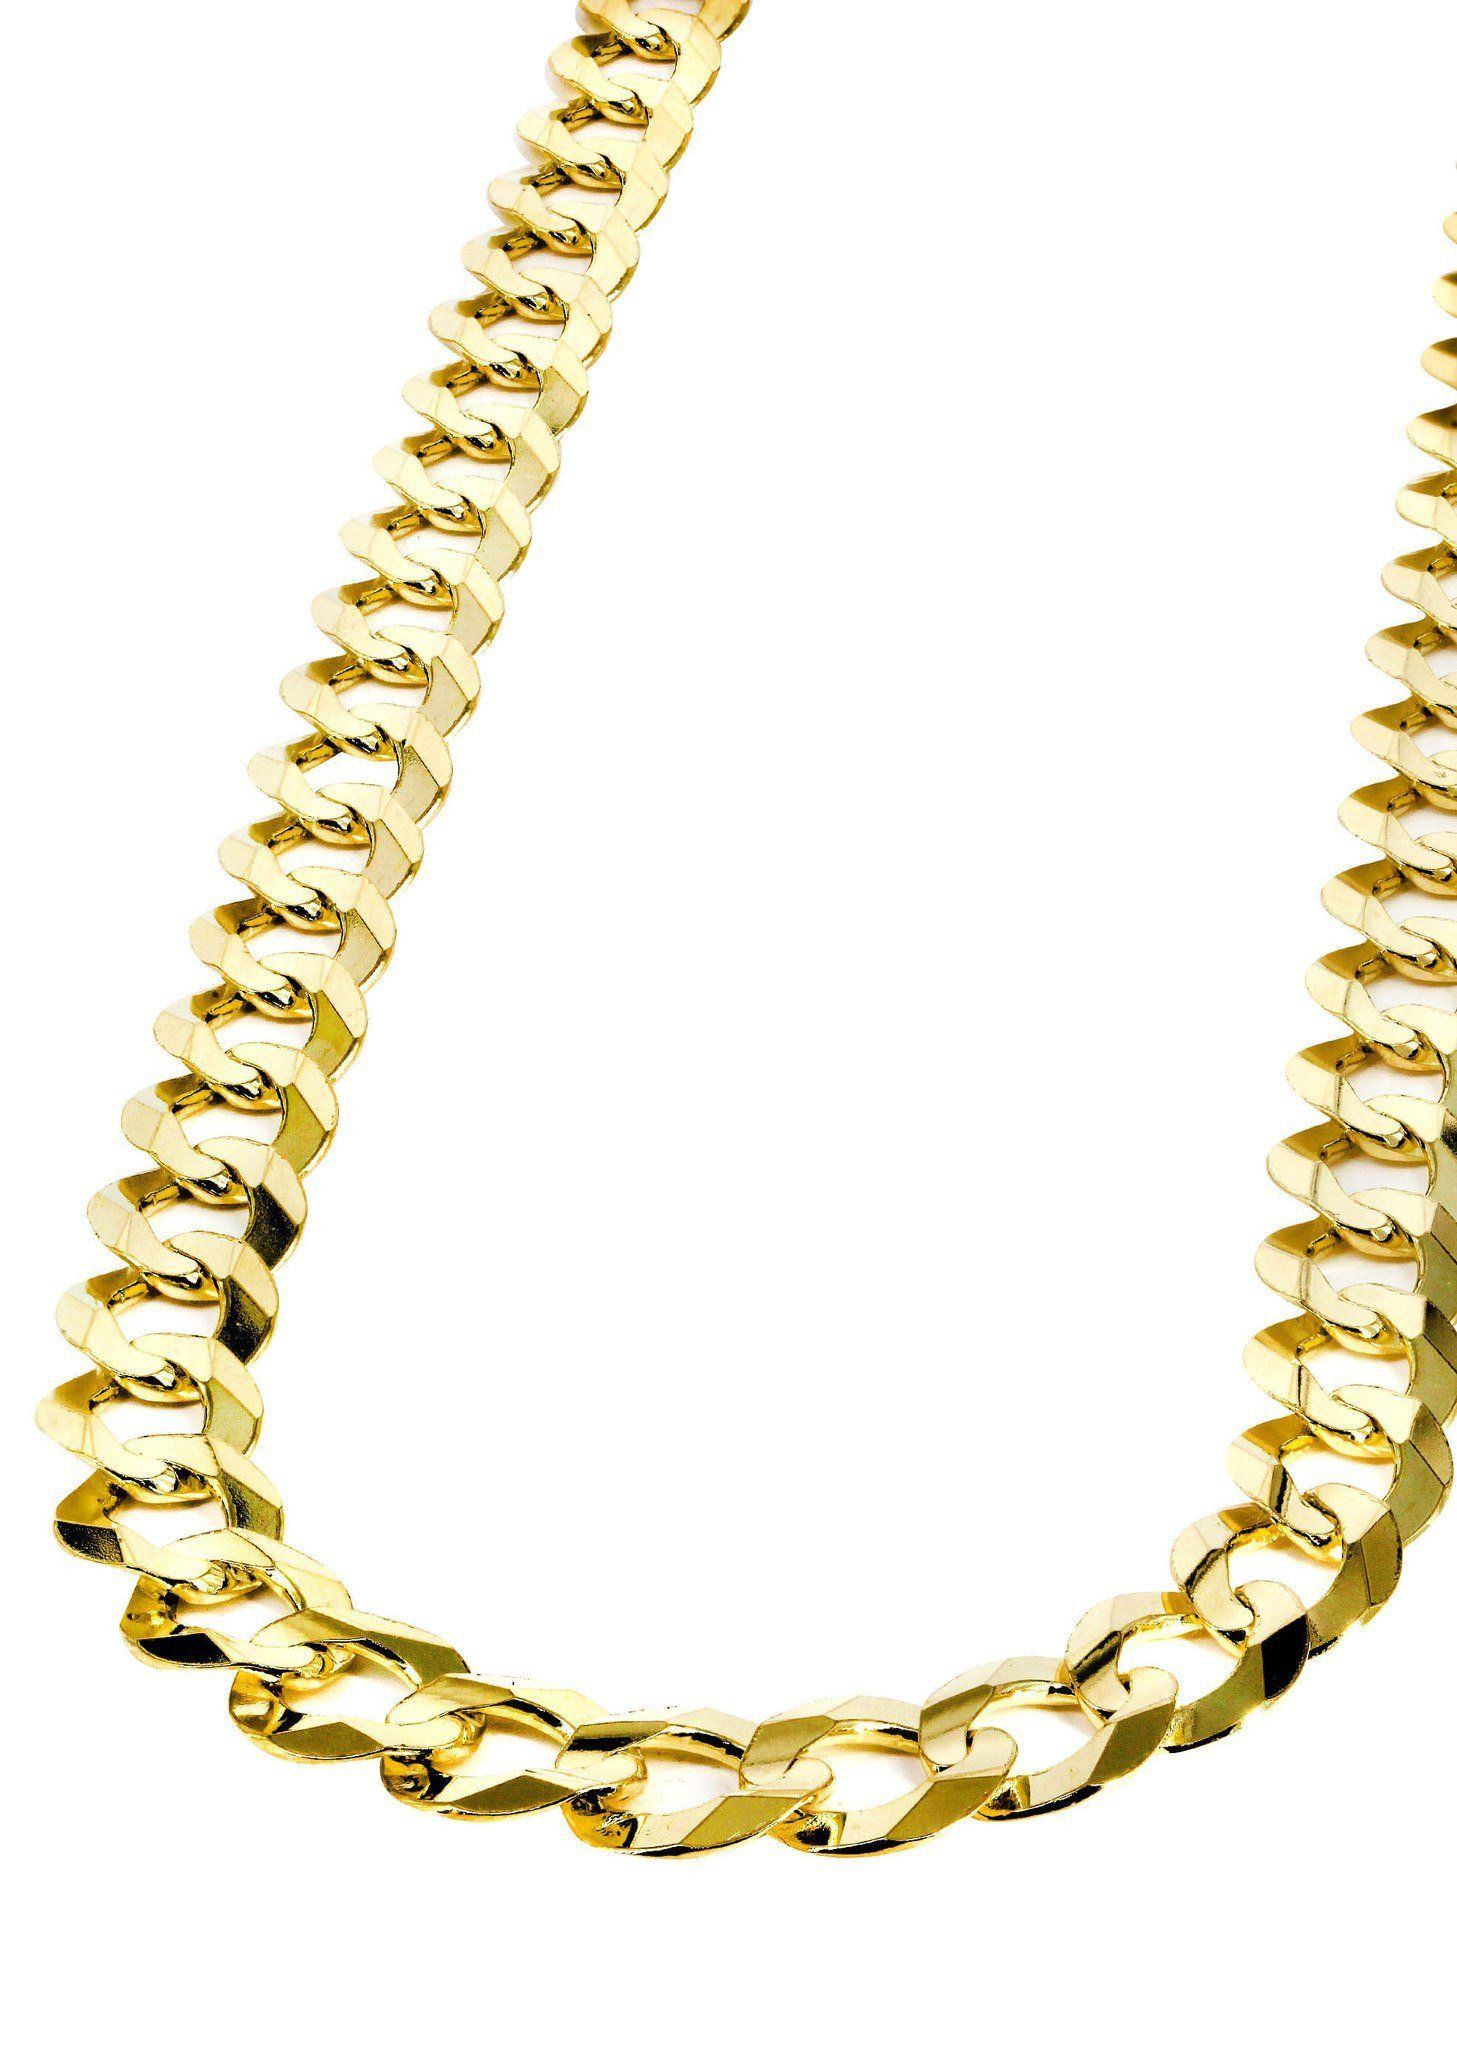 Mens Gold Chain Solid Cuban Link 10k Gold Gold Chains For Men Chains For Men 14k Gold Chain